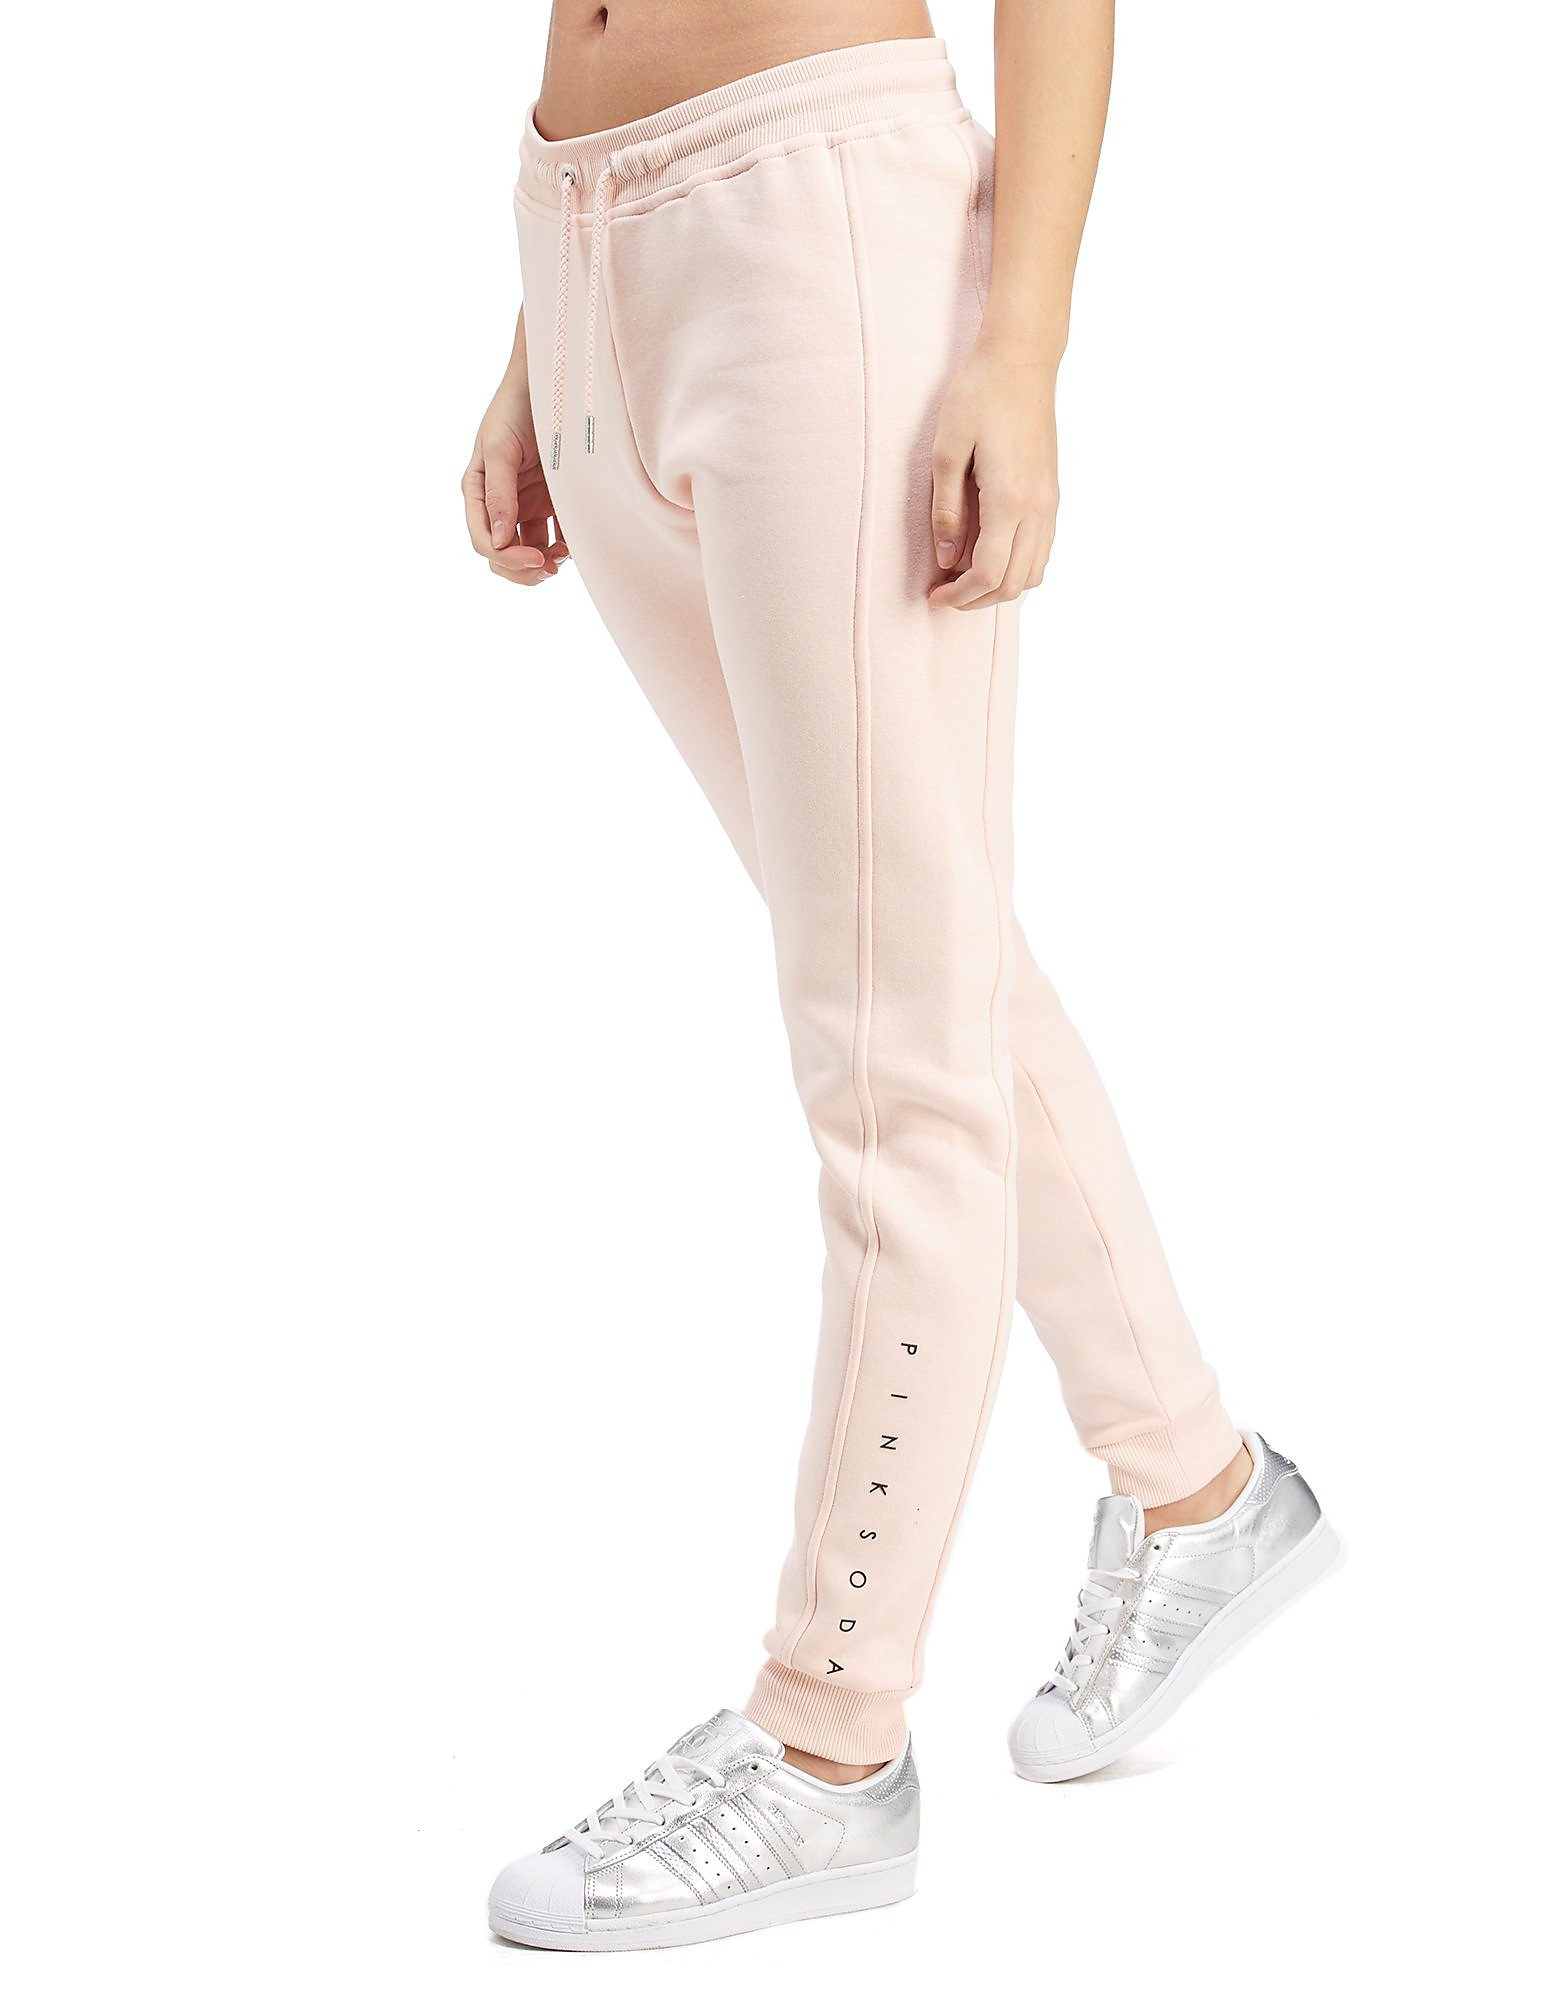 Pink Soda Sport Skinny Fit Jogging Pants